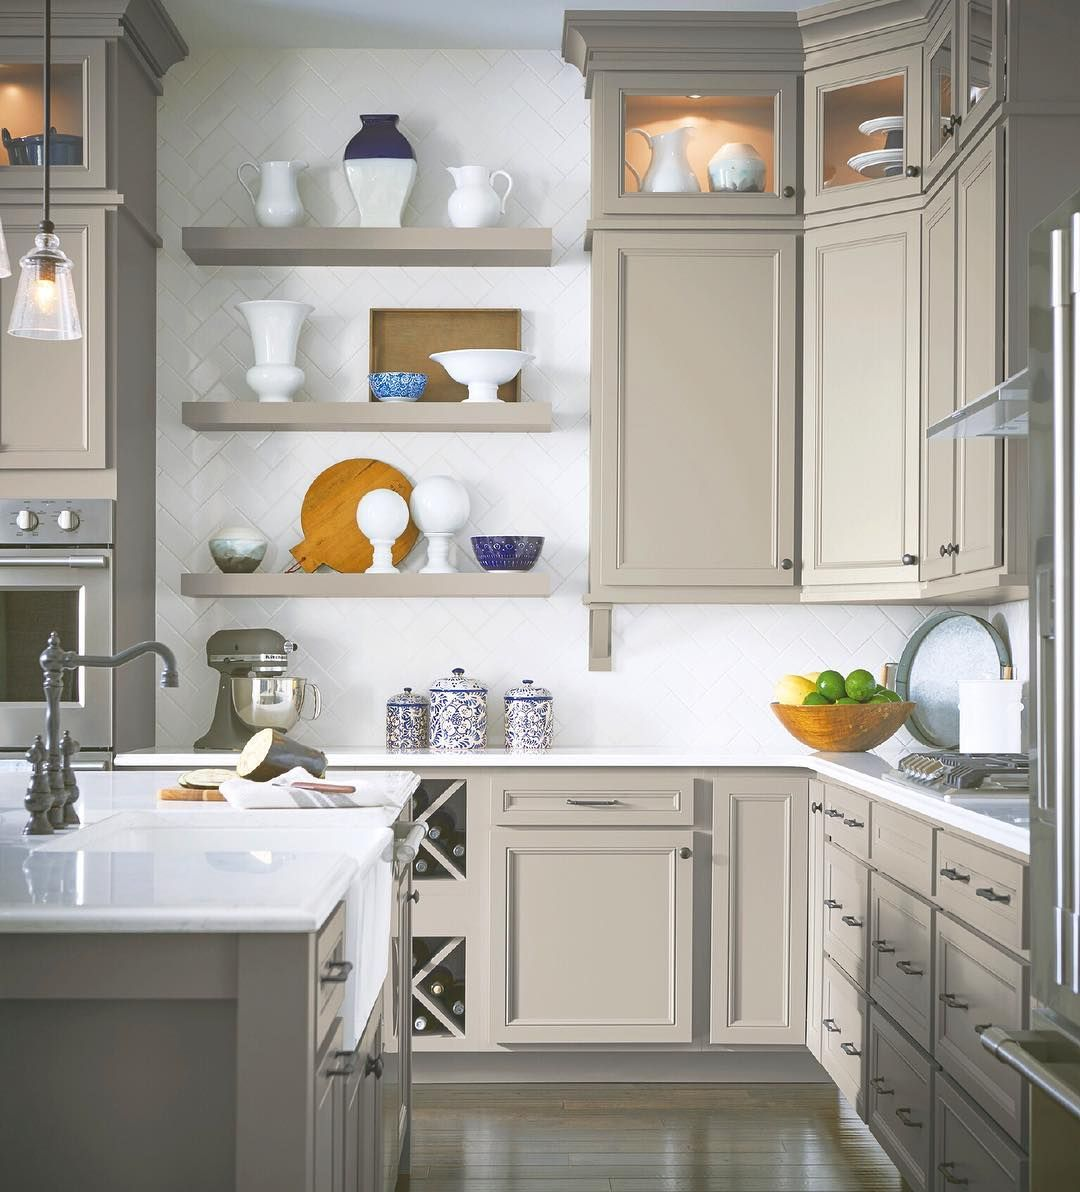 Open Shelving Creates A Unique Space For Your Kitchen Simslohman Aristocraft Beautifulkitchen Kitchendesign Kitchen Kitcheninspo In 2020